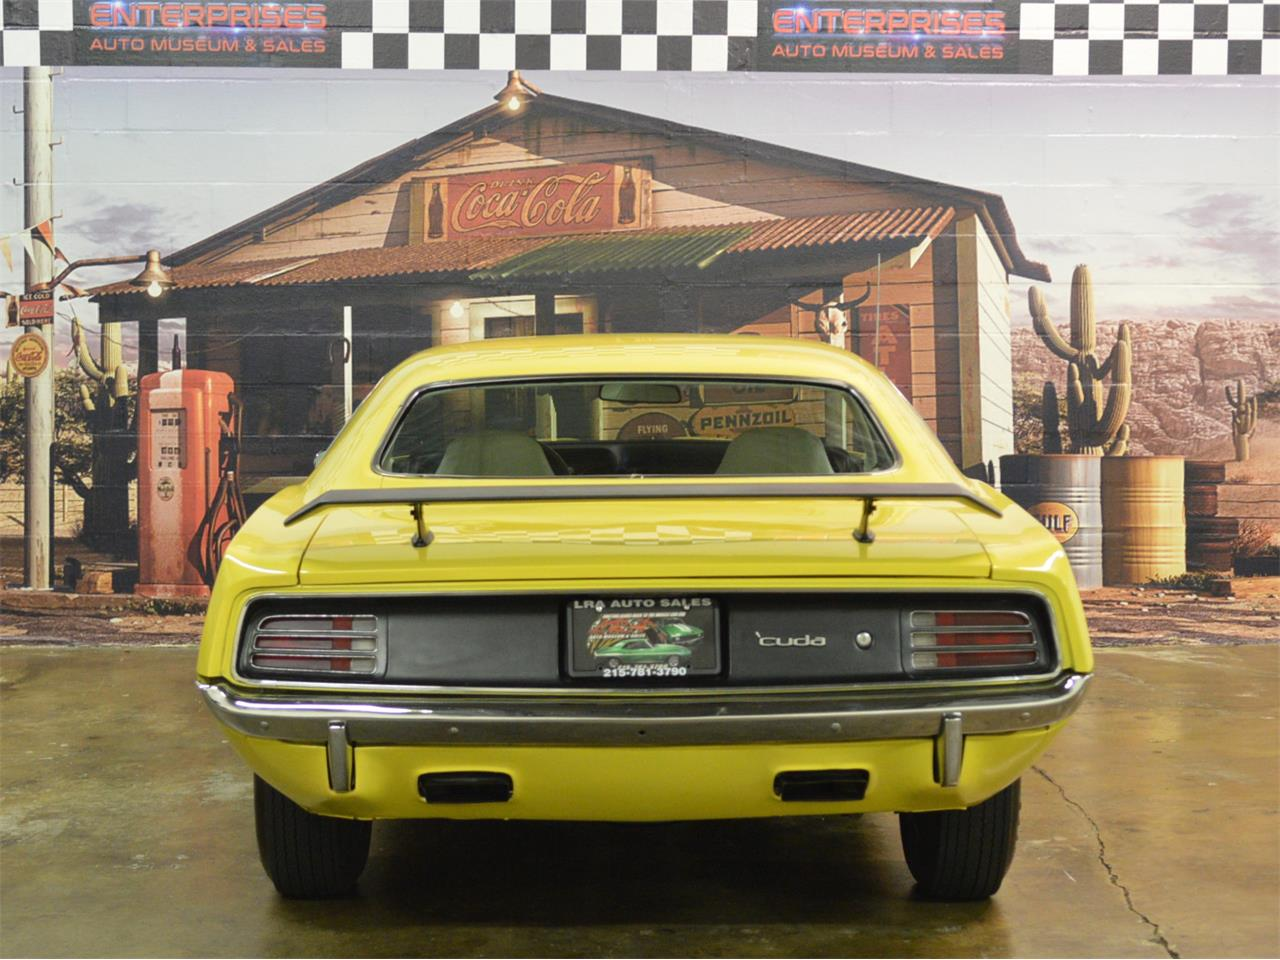 Large Picture of 1970 Plymouth Cuda located in Bristol Pennsylvania - $59,900.00 Offered by L.R.A. Enterprises Auto Museum & Sales - MD67